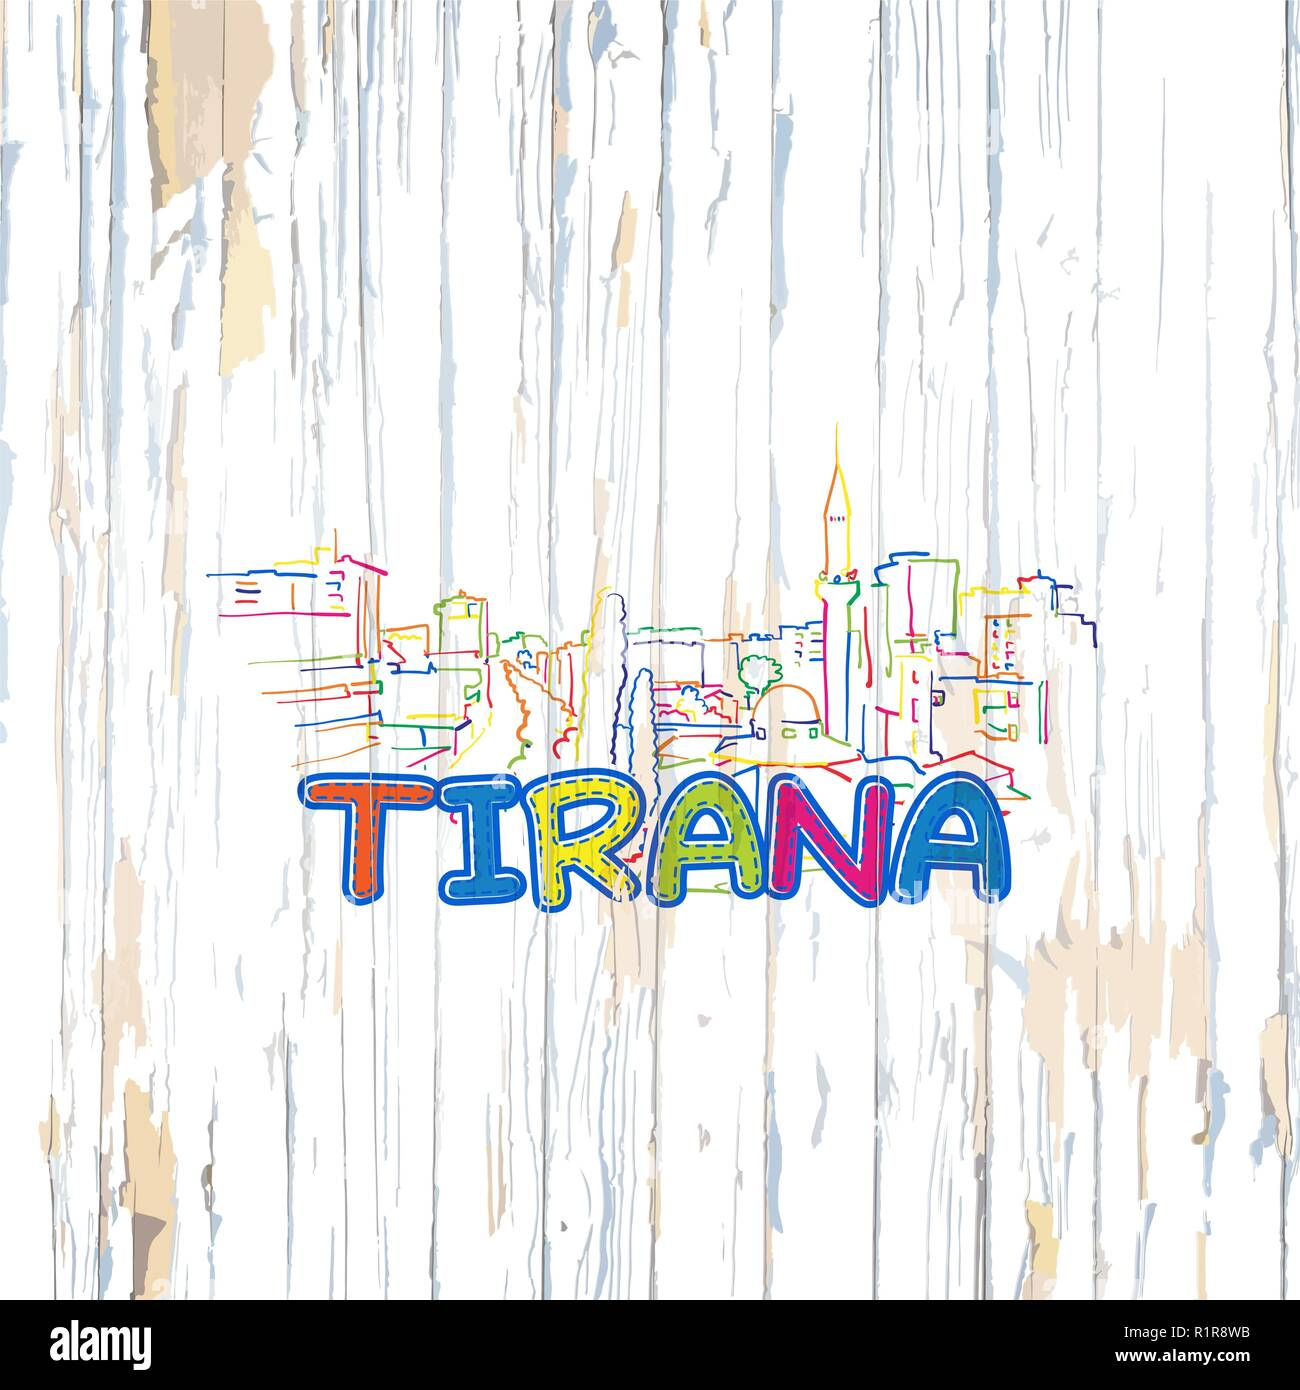 Colorful Tirana drawing on wooden background. Hand drawn vector illustration. - Stock Vector